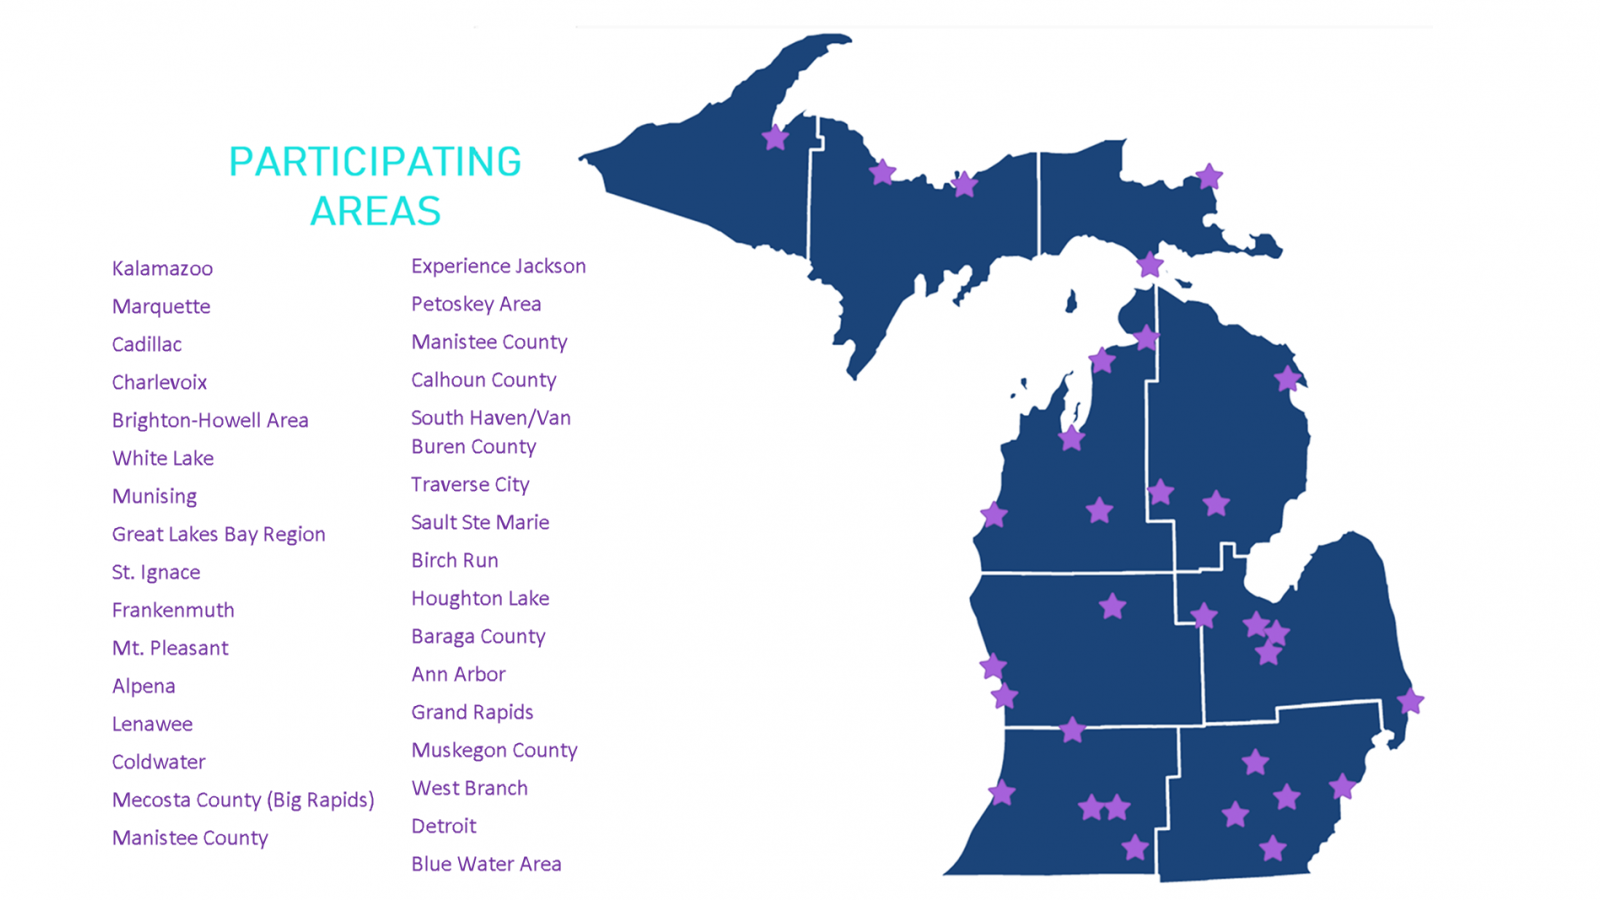 List of participating areas next to a map of the state with stars highlighting the areas